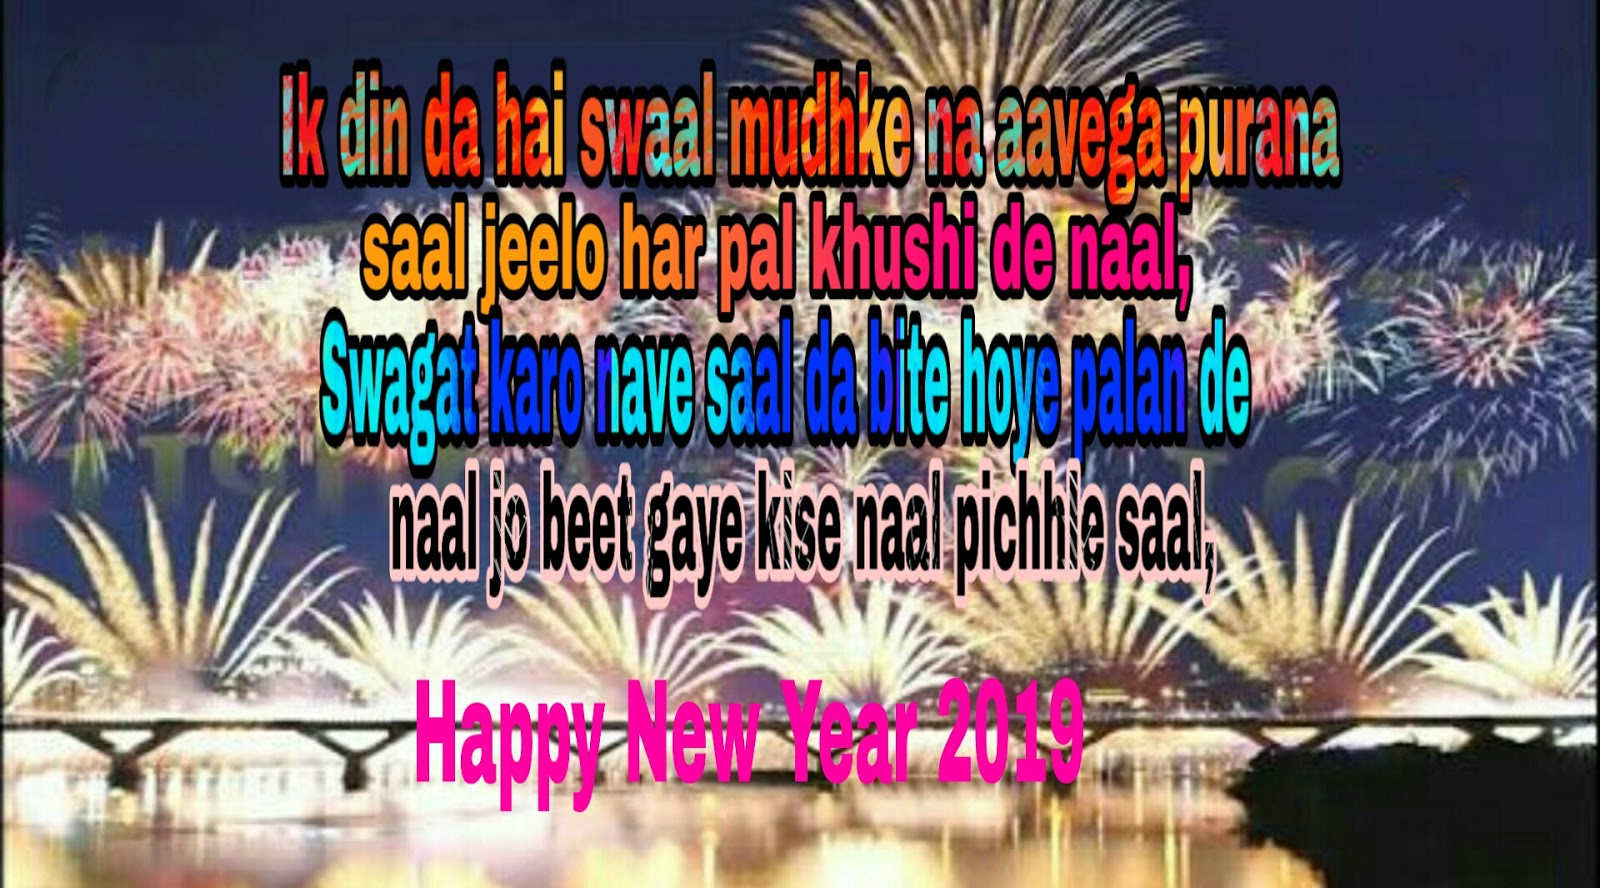 happy new year wishes in punjabi language